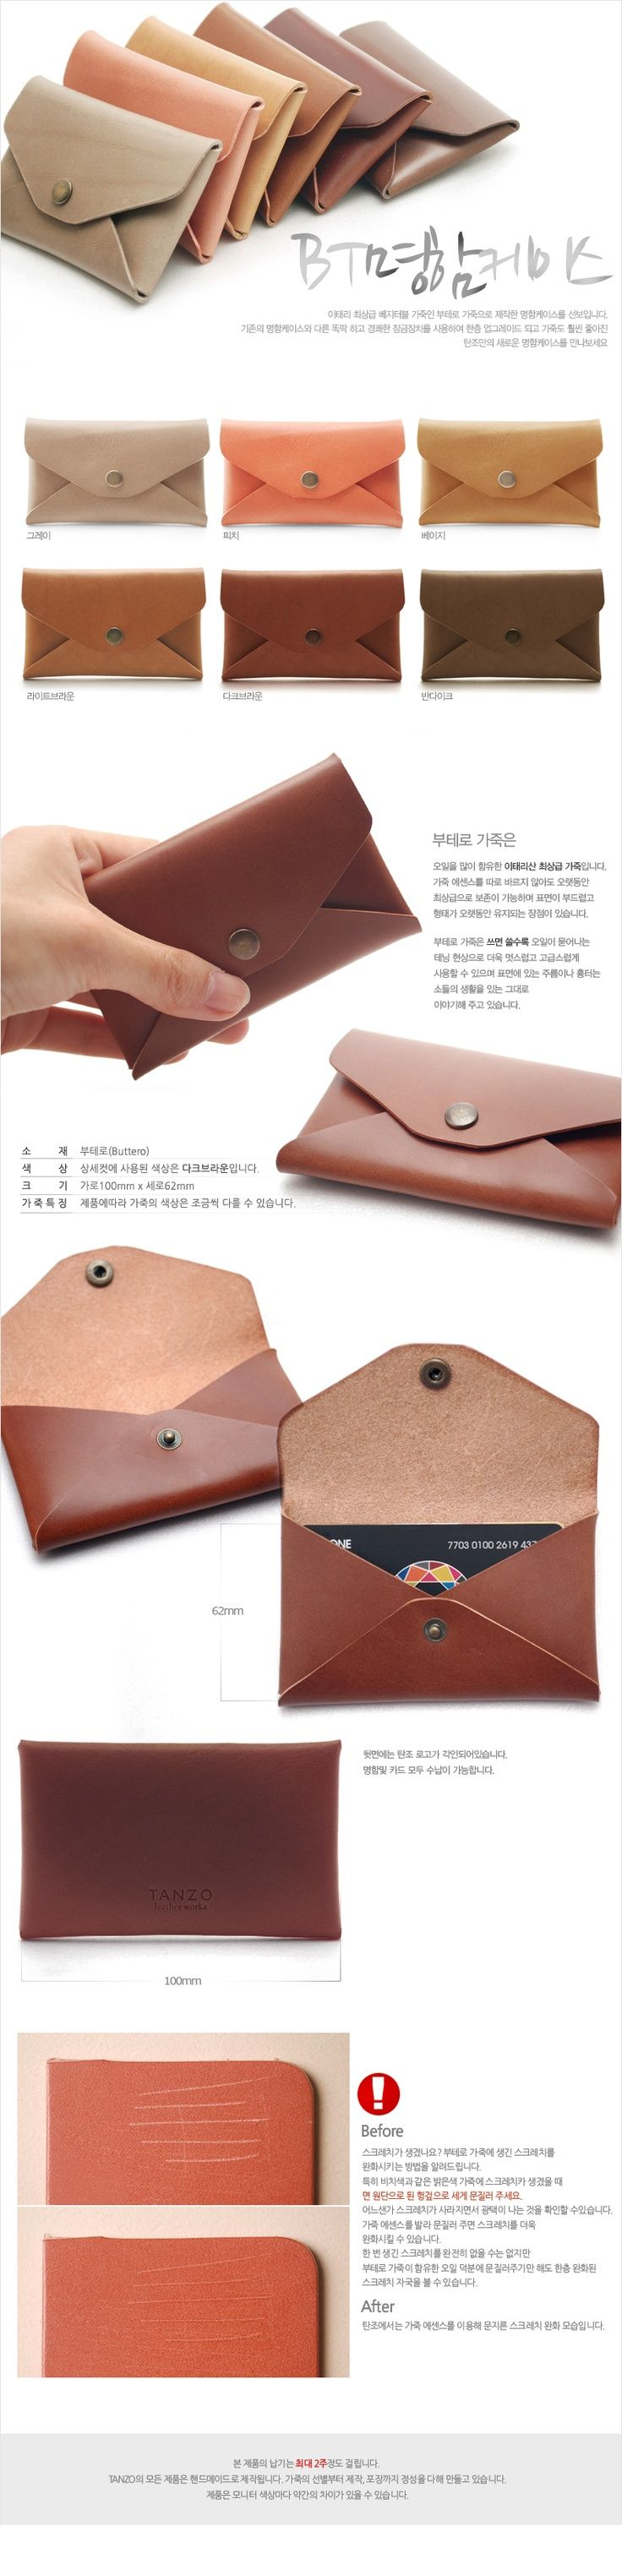 Possible leather craft project, a no-sew coin pouch